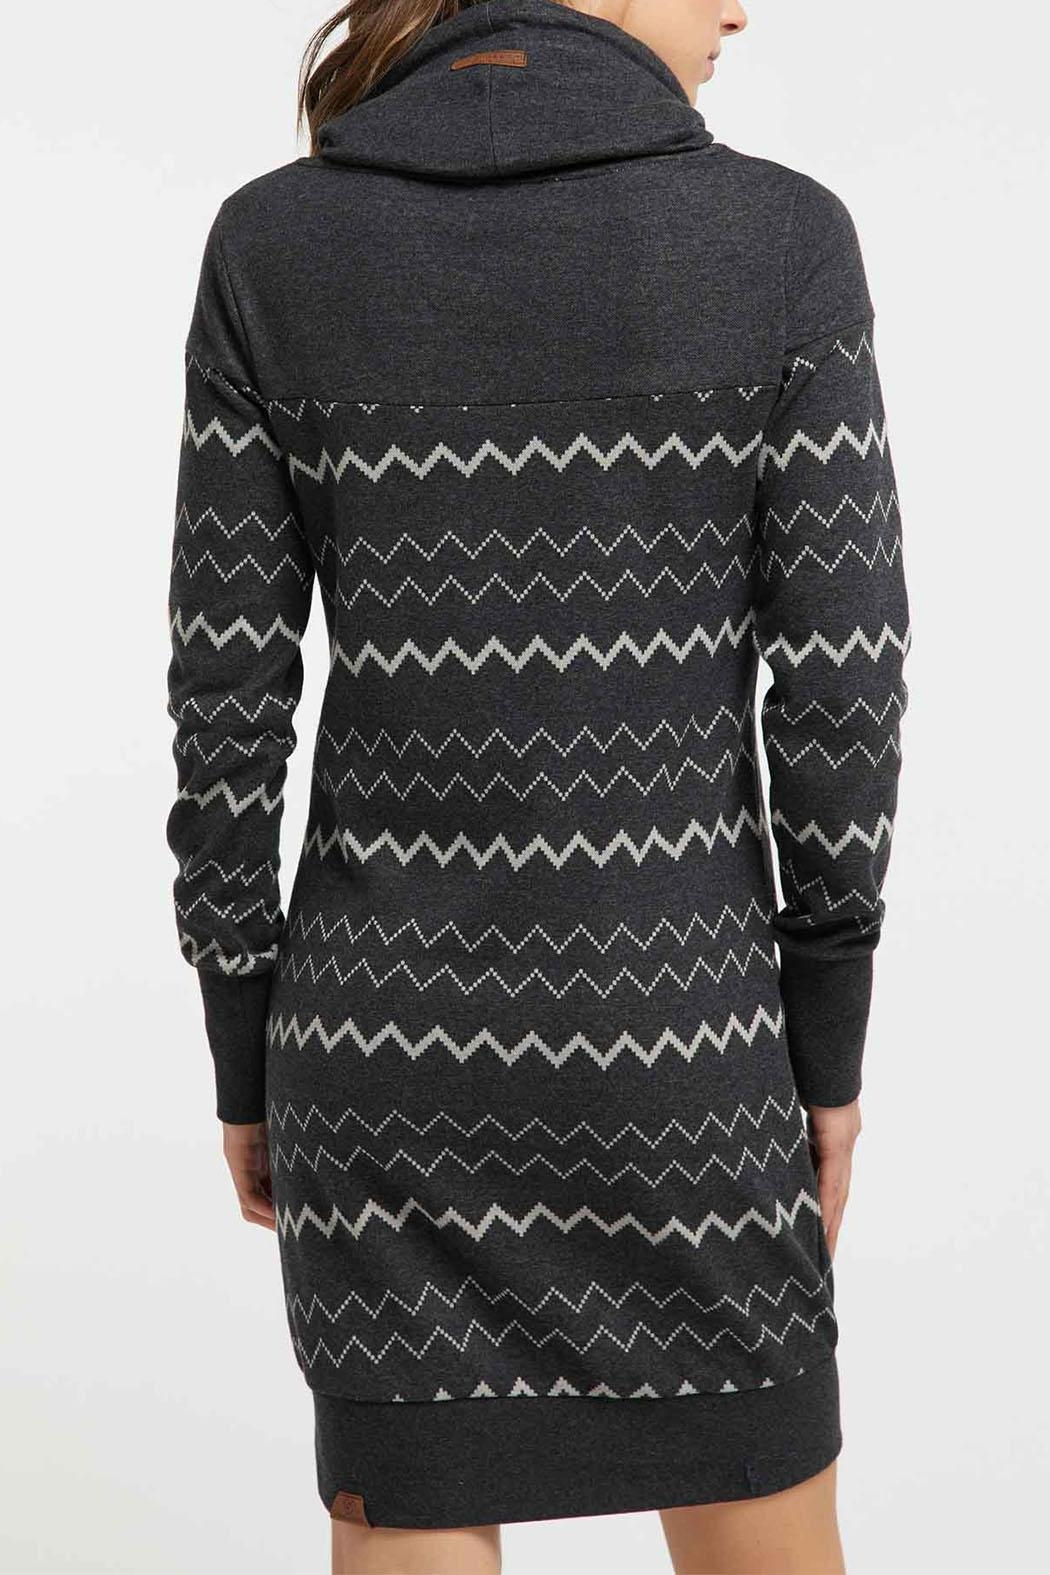 Ragwear Chloe Sweater Dress - Front Full Image